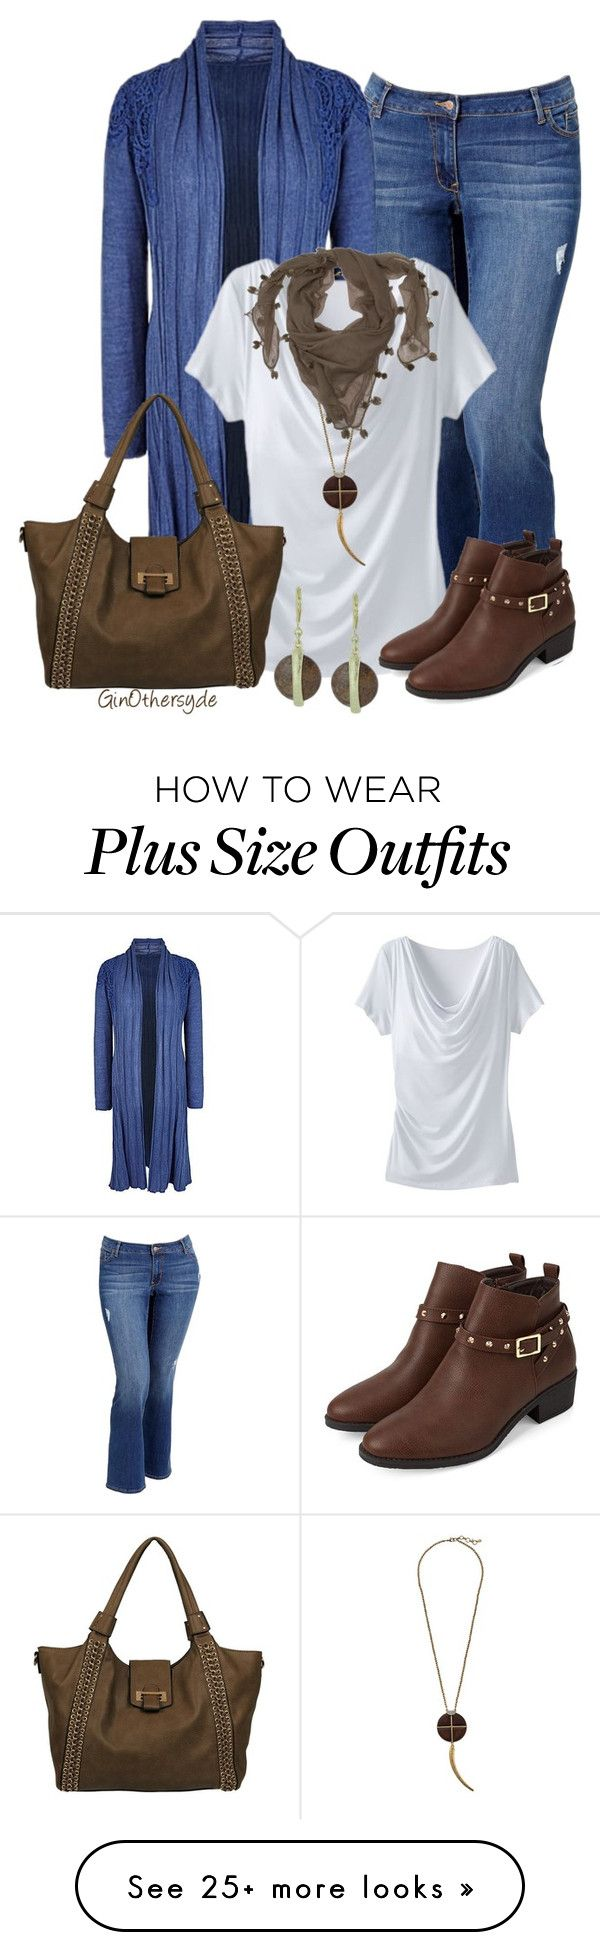 """Curvy Woman - Plus Size"" by ginothersyde on Polyvore featuring Old Navy, TravelSmith, Lucky Brand, Black Rivet, DAY Birger et Mikkelsen and 337"